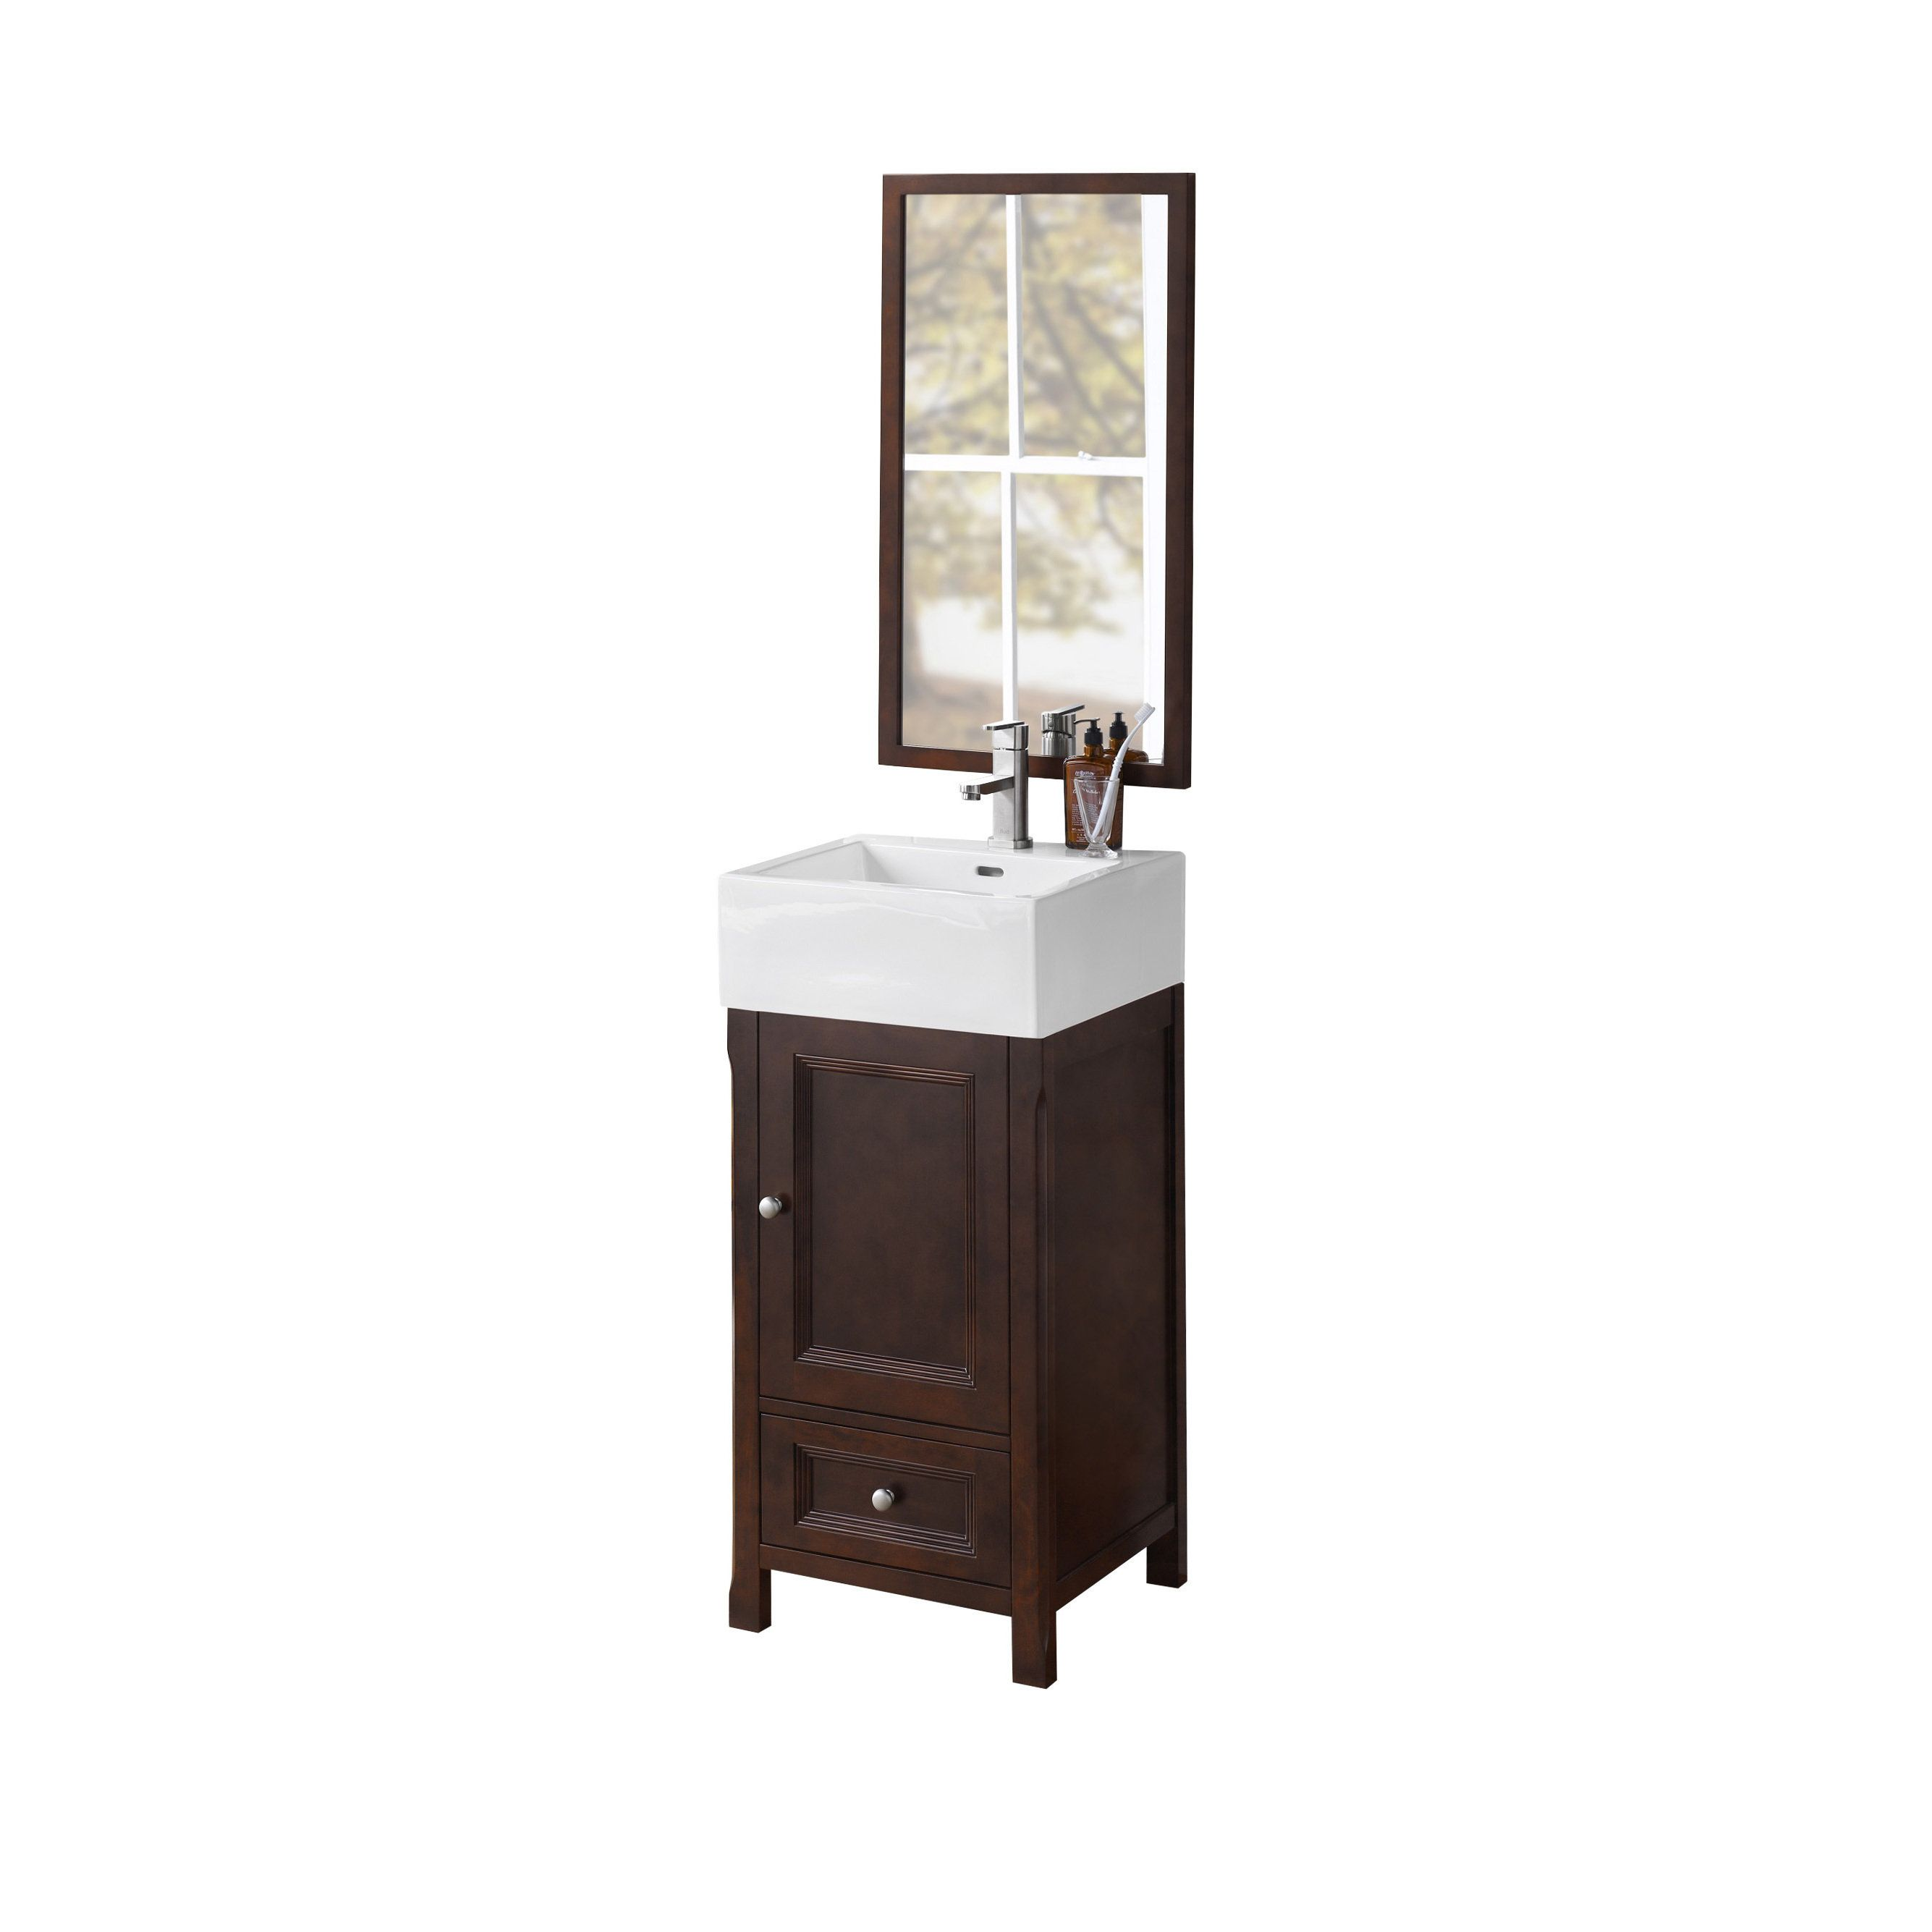 our sinks x inch images standard american best of new vanity products pinterest on bathroom